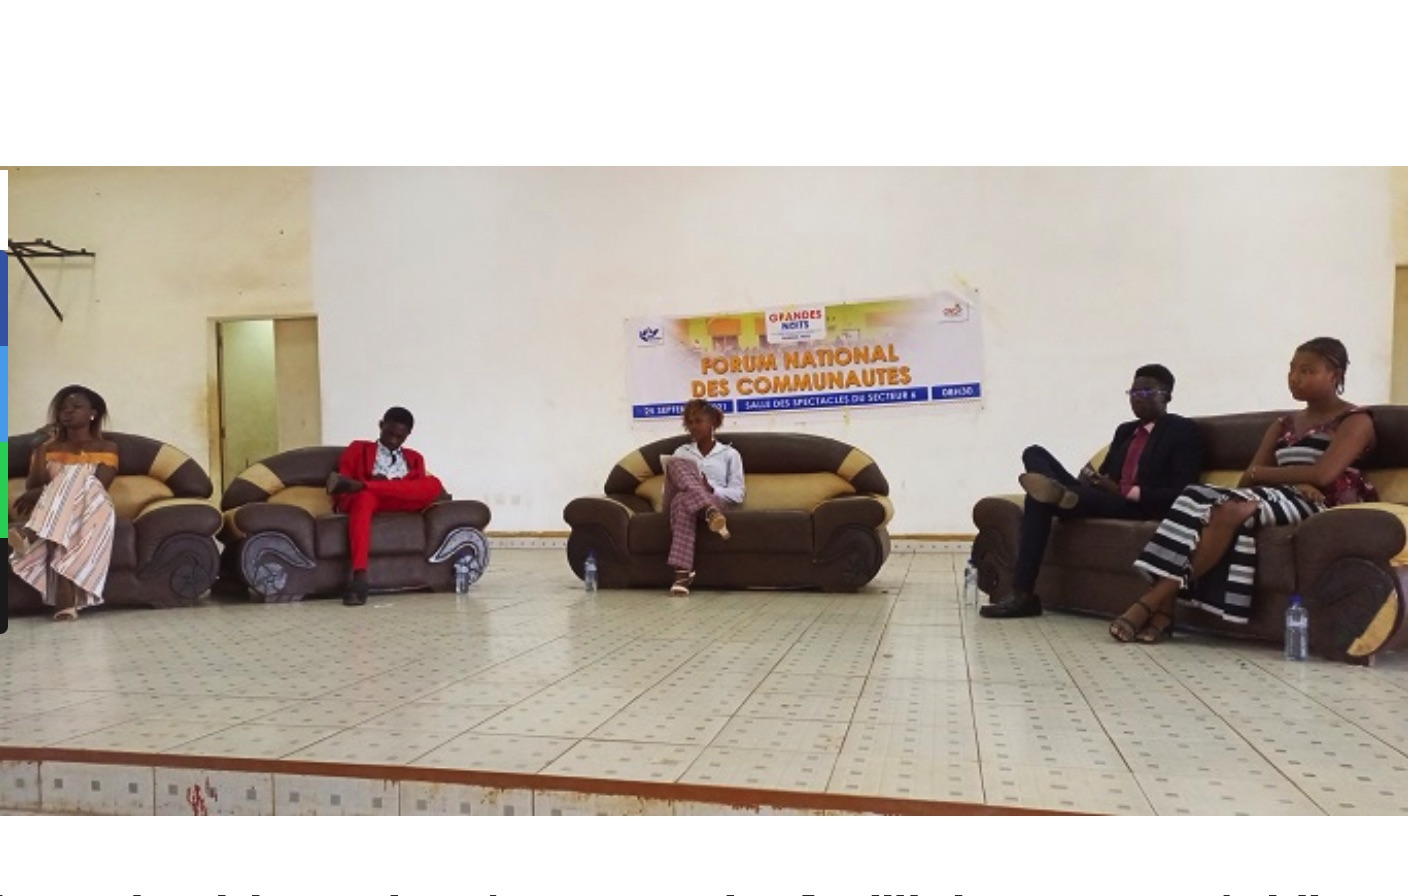 Burkina Faso: Great nights of the communities of Dédougou: Young people sensitized on the culture of peace